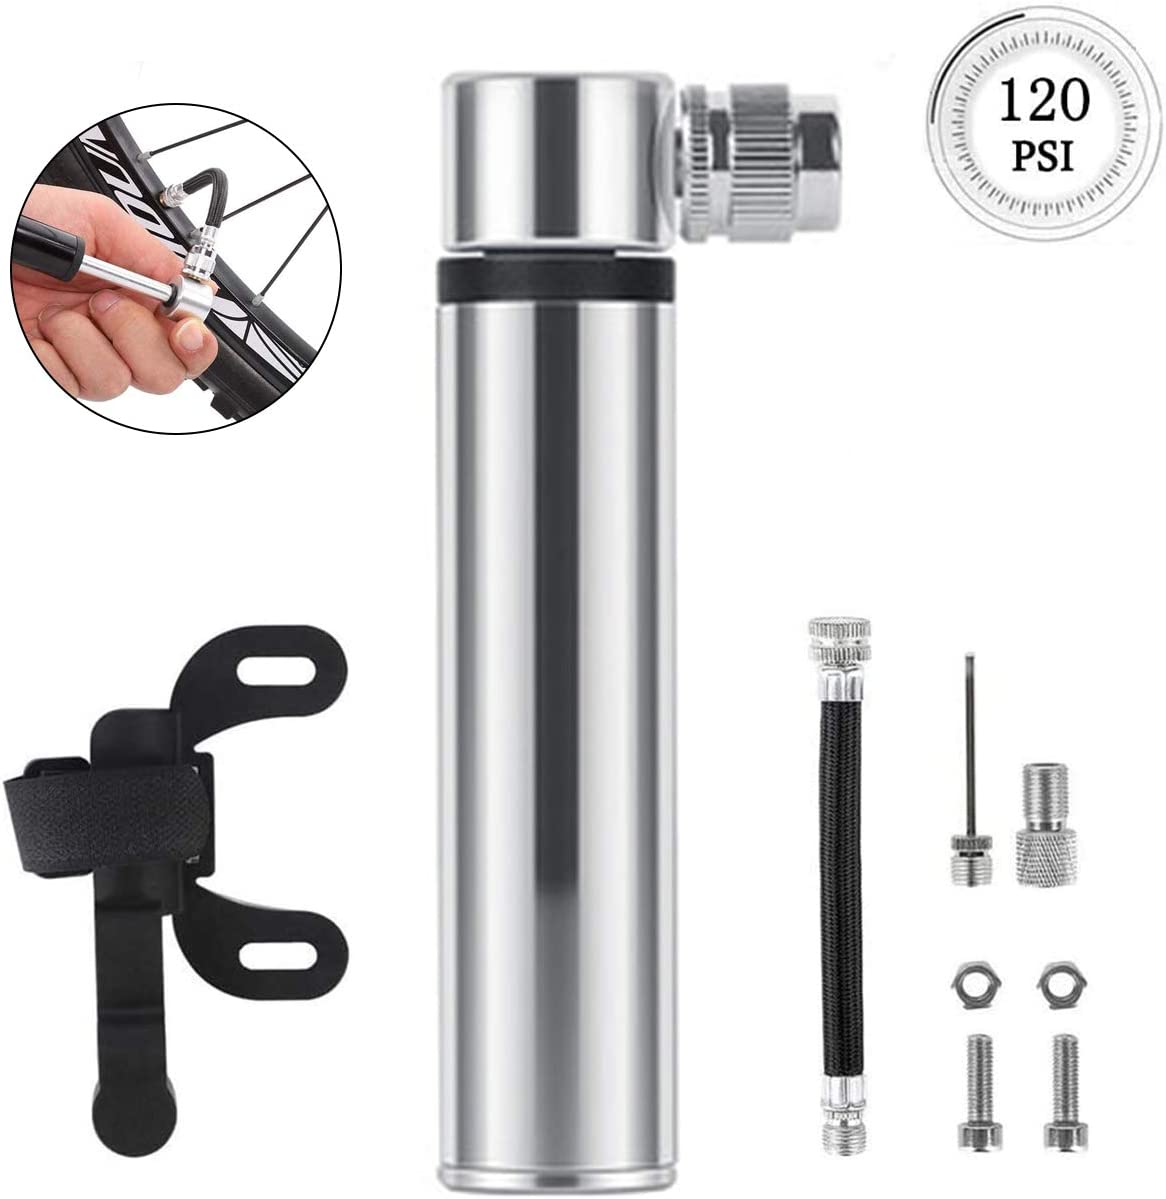 Mountain Bikes,Basketball VARWANEO Bike Pump Portable Mini Bicycle Pump 120 PSI-Fits Presta and Schrader Ball Pump with Needles Super Fast Tyre Inflation Frame Mounted Air Pump for Road